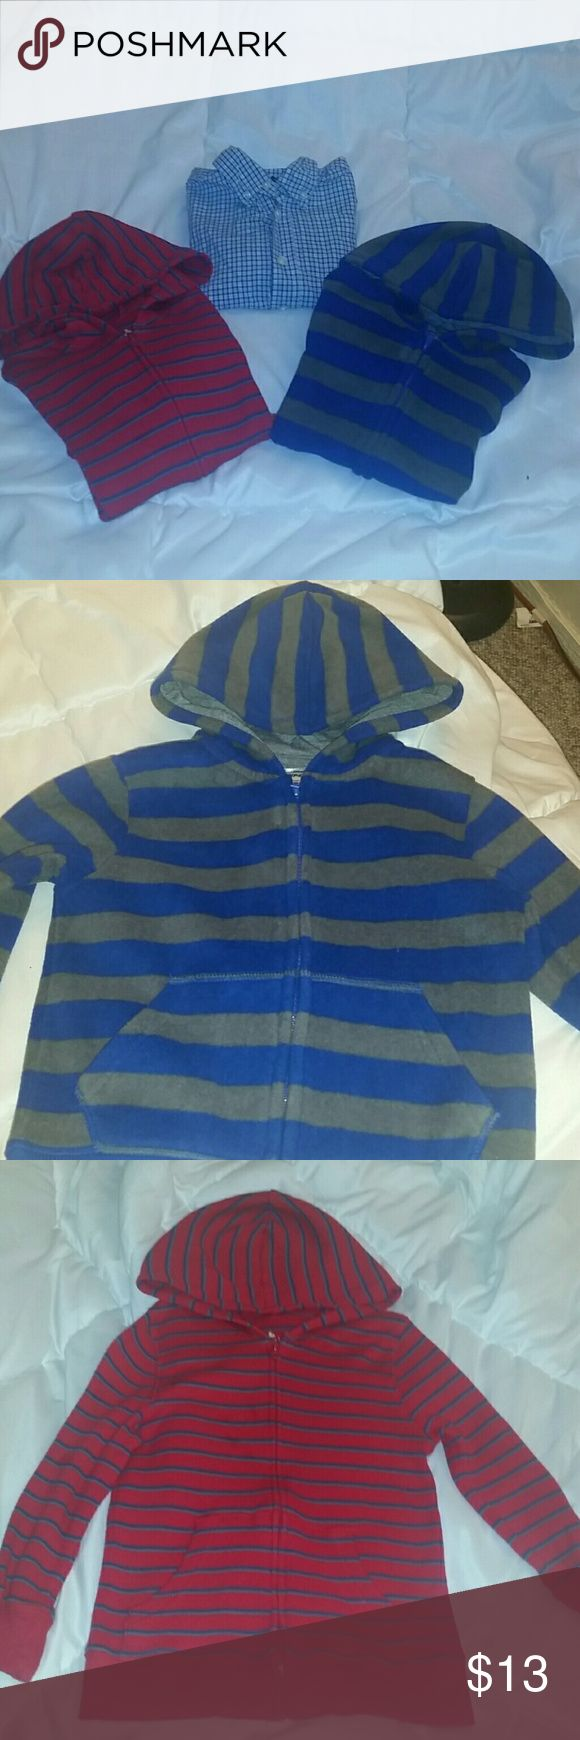 Boys 4T 3 Piece Bundle All size 4T and excellent condition.  Osh Kosh brand button up,  collared long sleeved shirt.  Shades of blue plaid with green lining.    Garanimals blue and gray striped zip up hoodie.   Jumping Beans brand zip up hoodie. Red with thin blue and gray stripes. Other